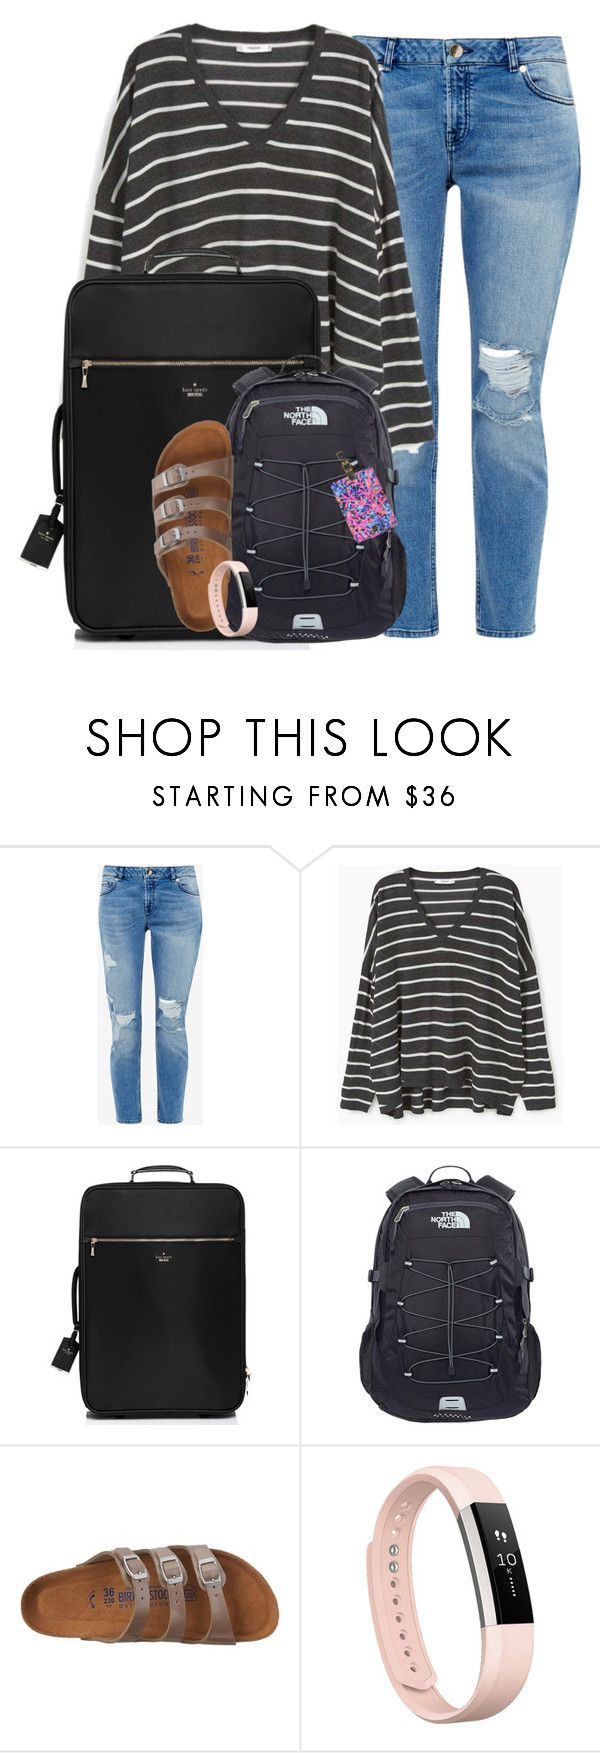 """""""Leaving for Mexico tomorrow!!!!!"""" by amberfmillard-1 ❤ liked on Polyvore featuring Ted Baker, MANGO, Kate Spade, The North Face, Birkenstock, Fitbit and Lilly Pulitzer"""